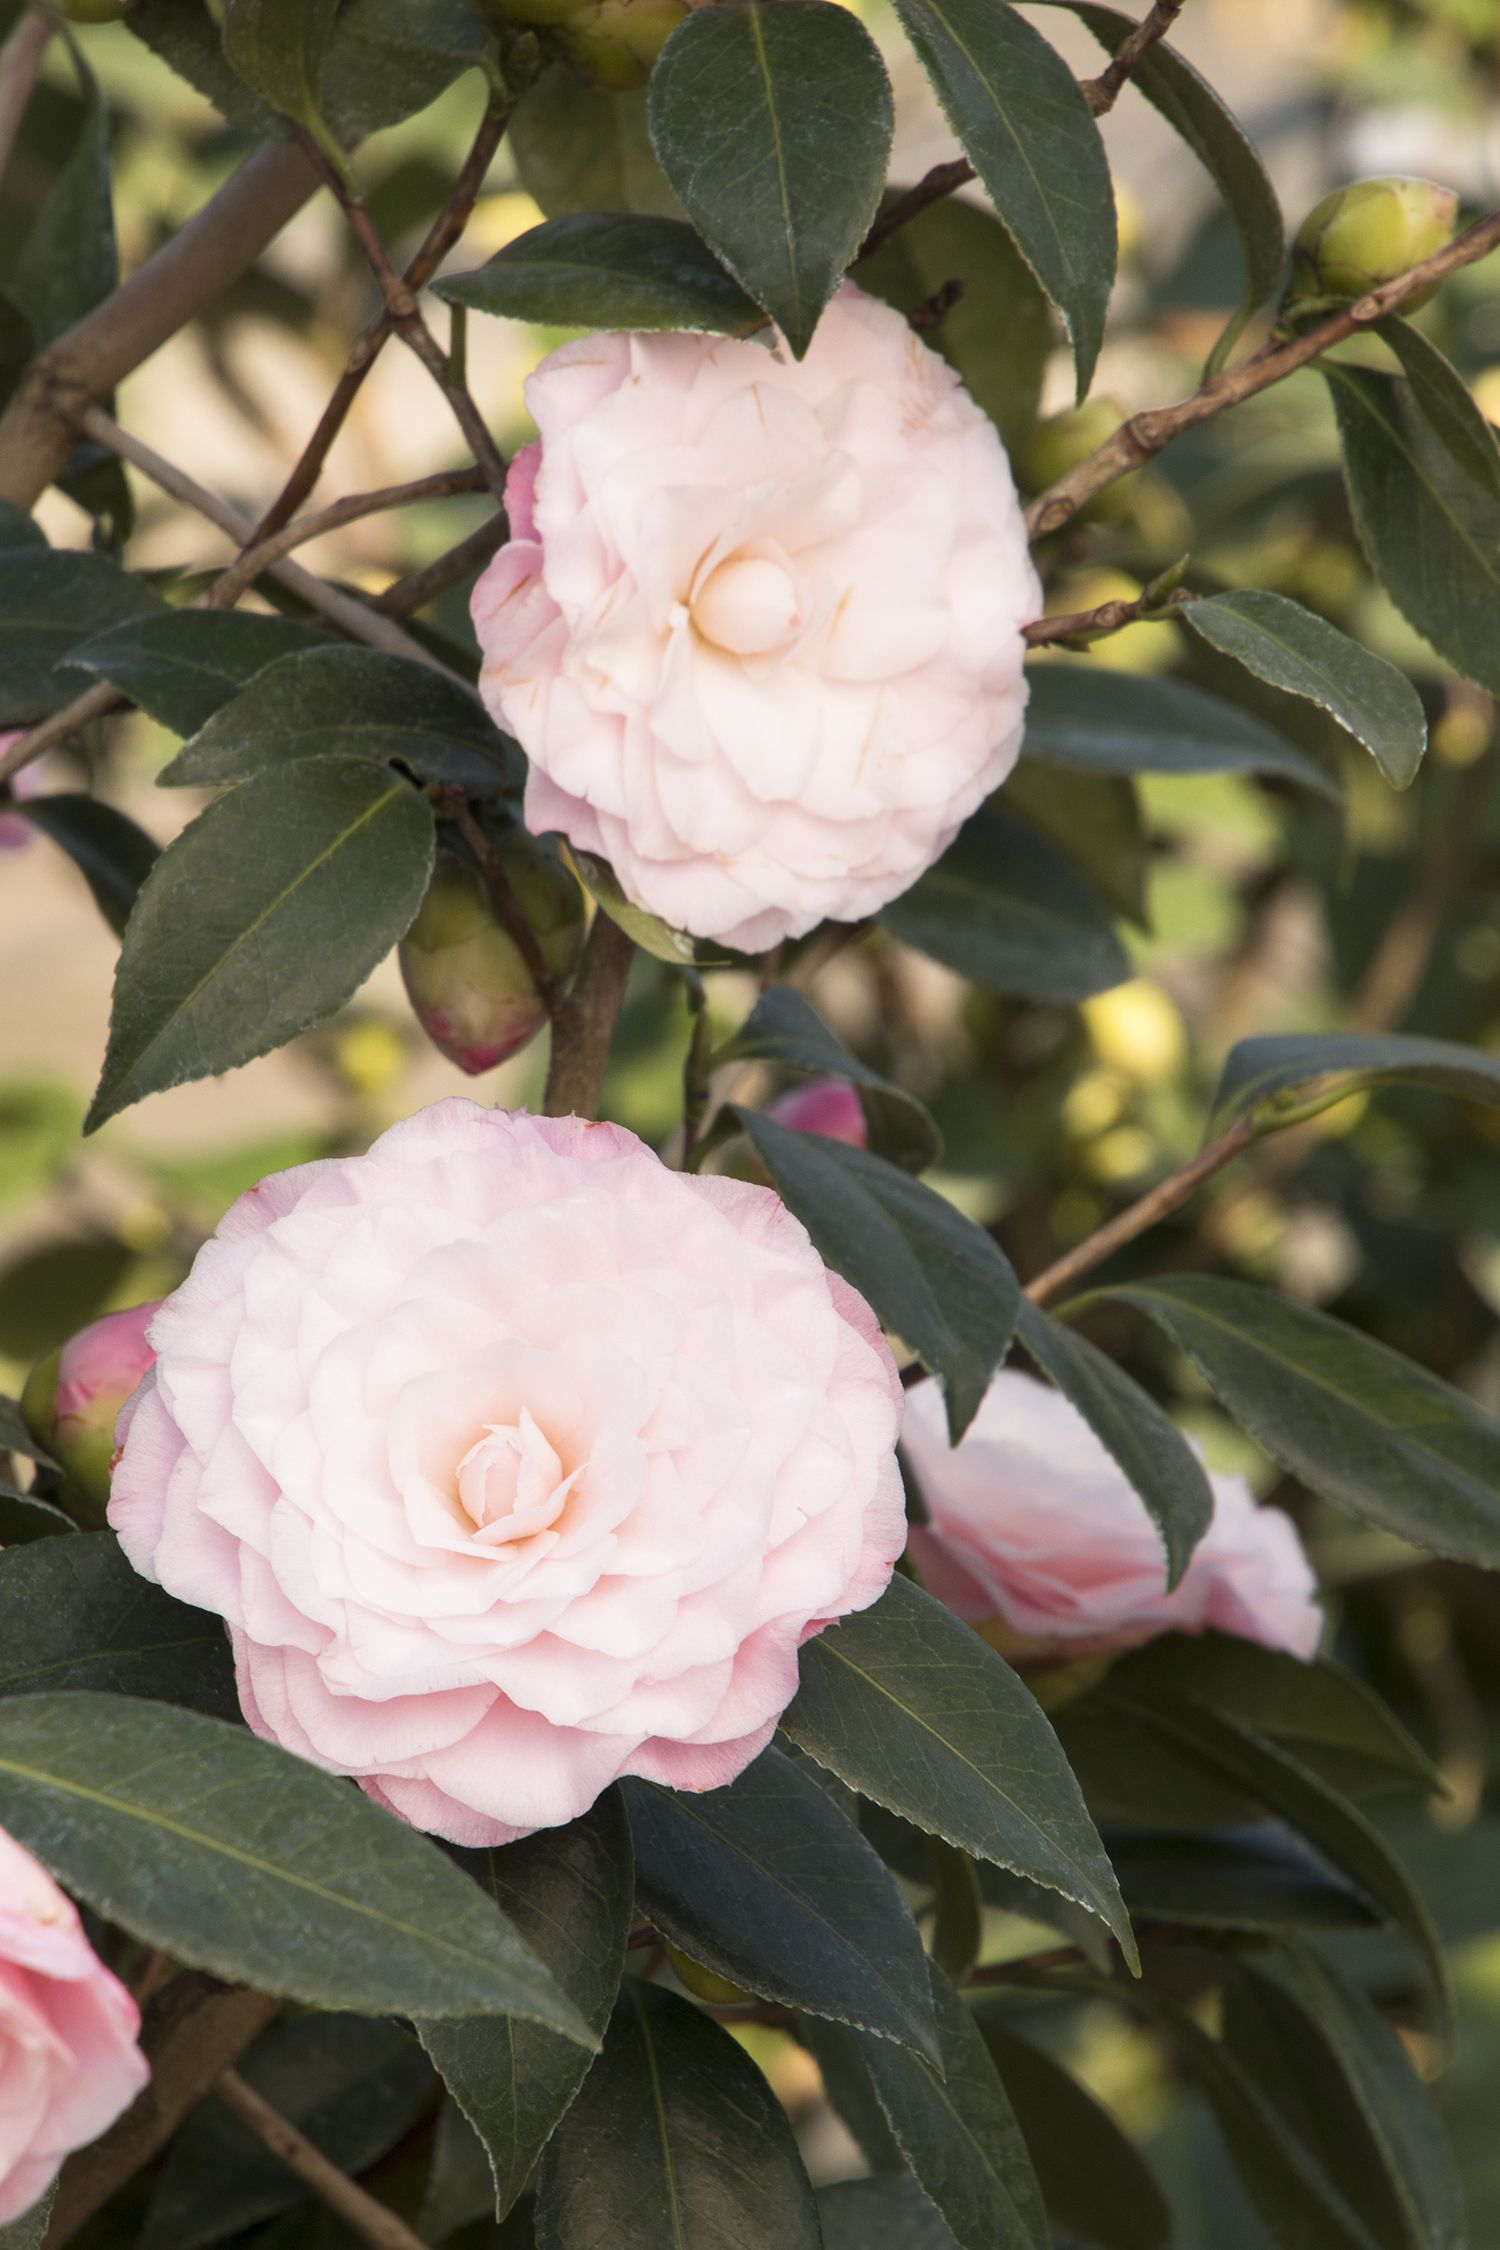 Nuccios Pearl Camellia Has Spectacular Fully Double Blooms With